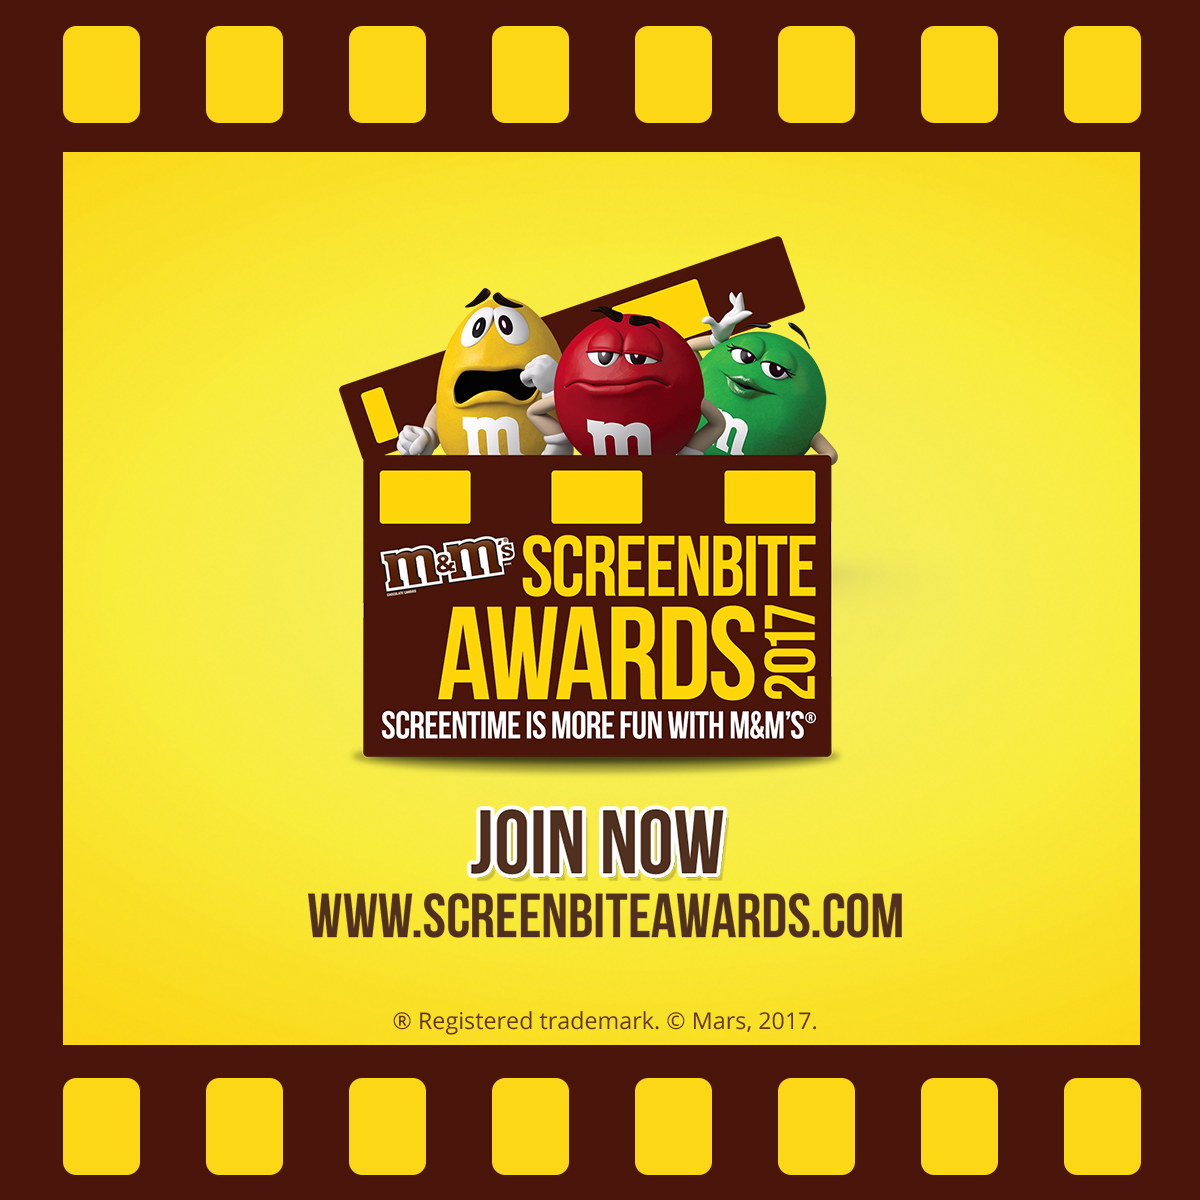 Join the M&M'S® Screenbite Awards 2017